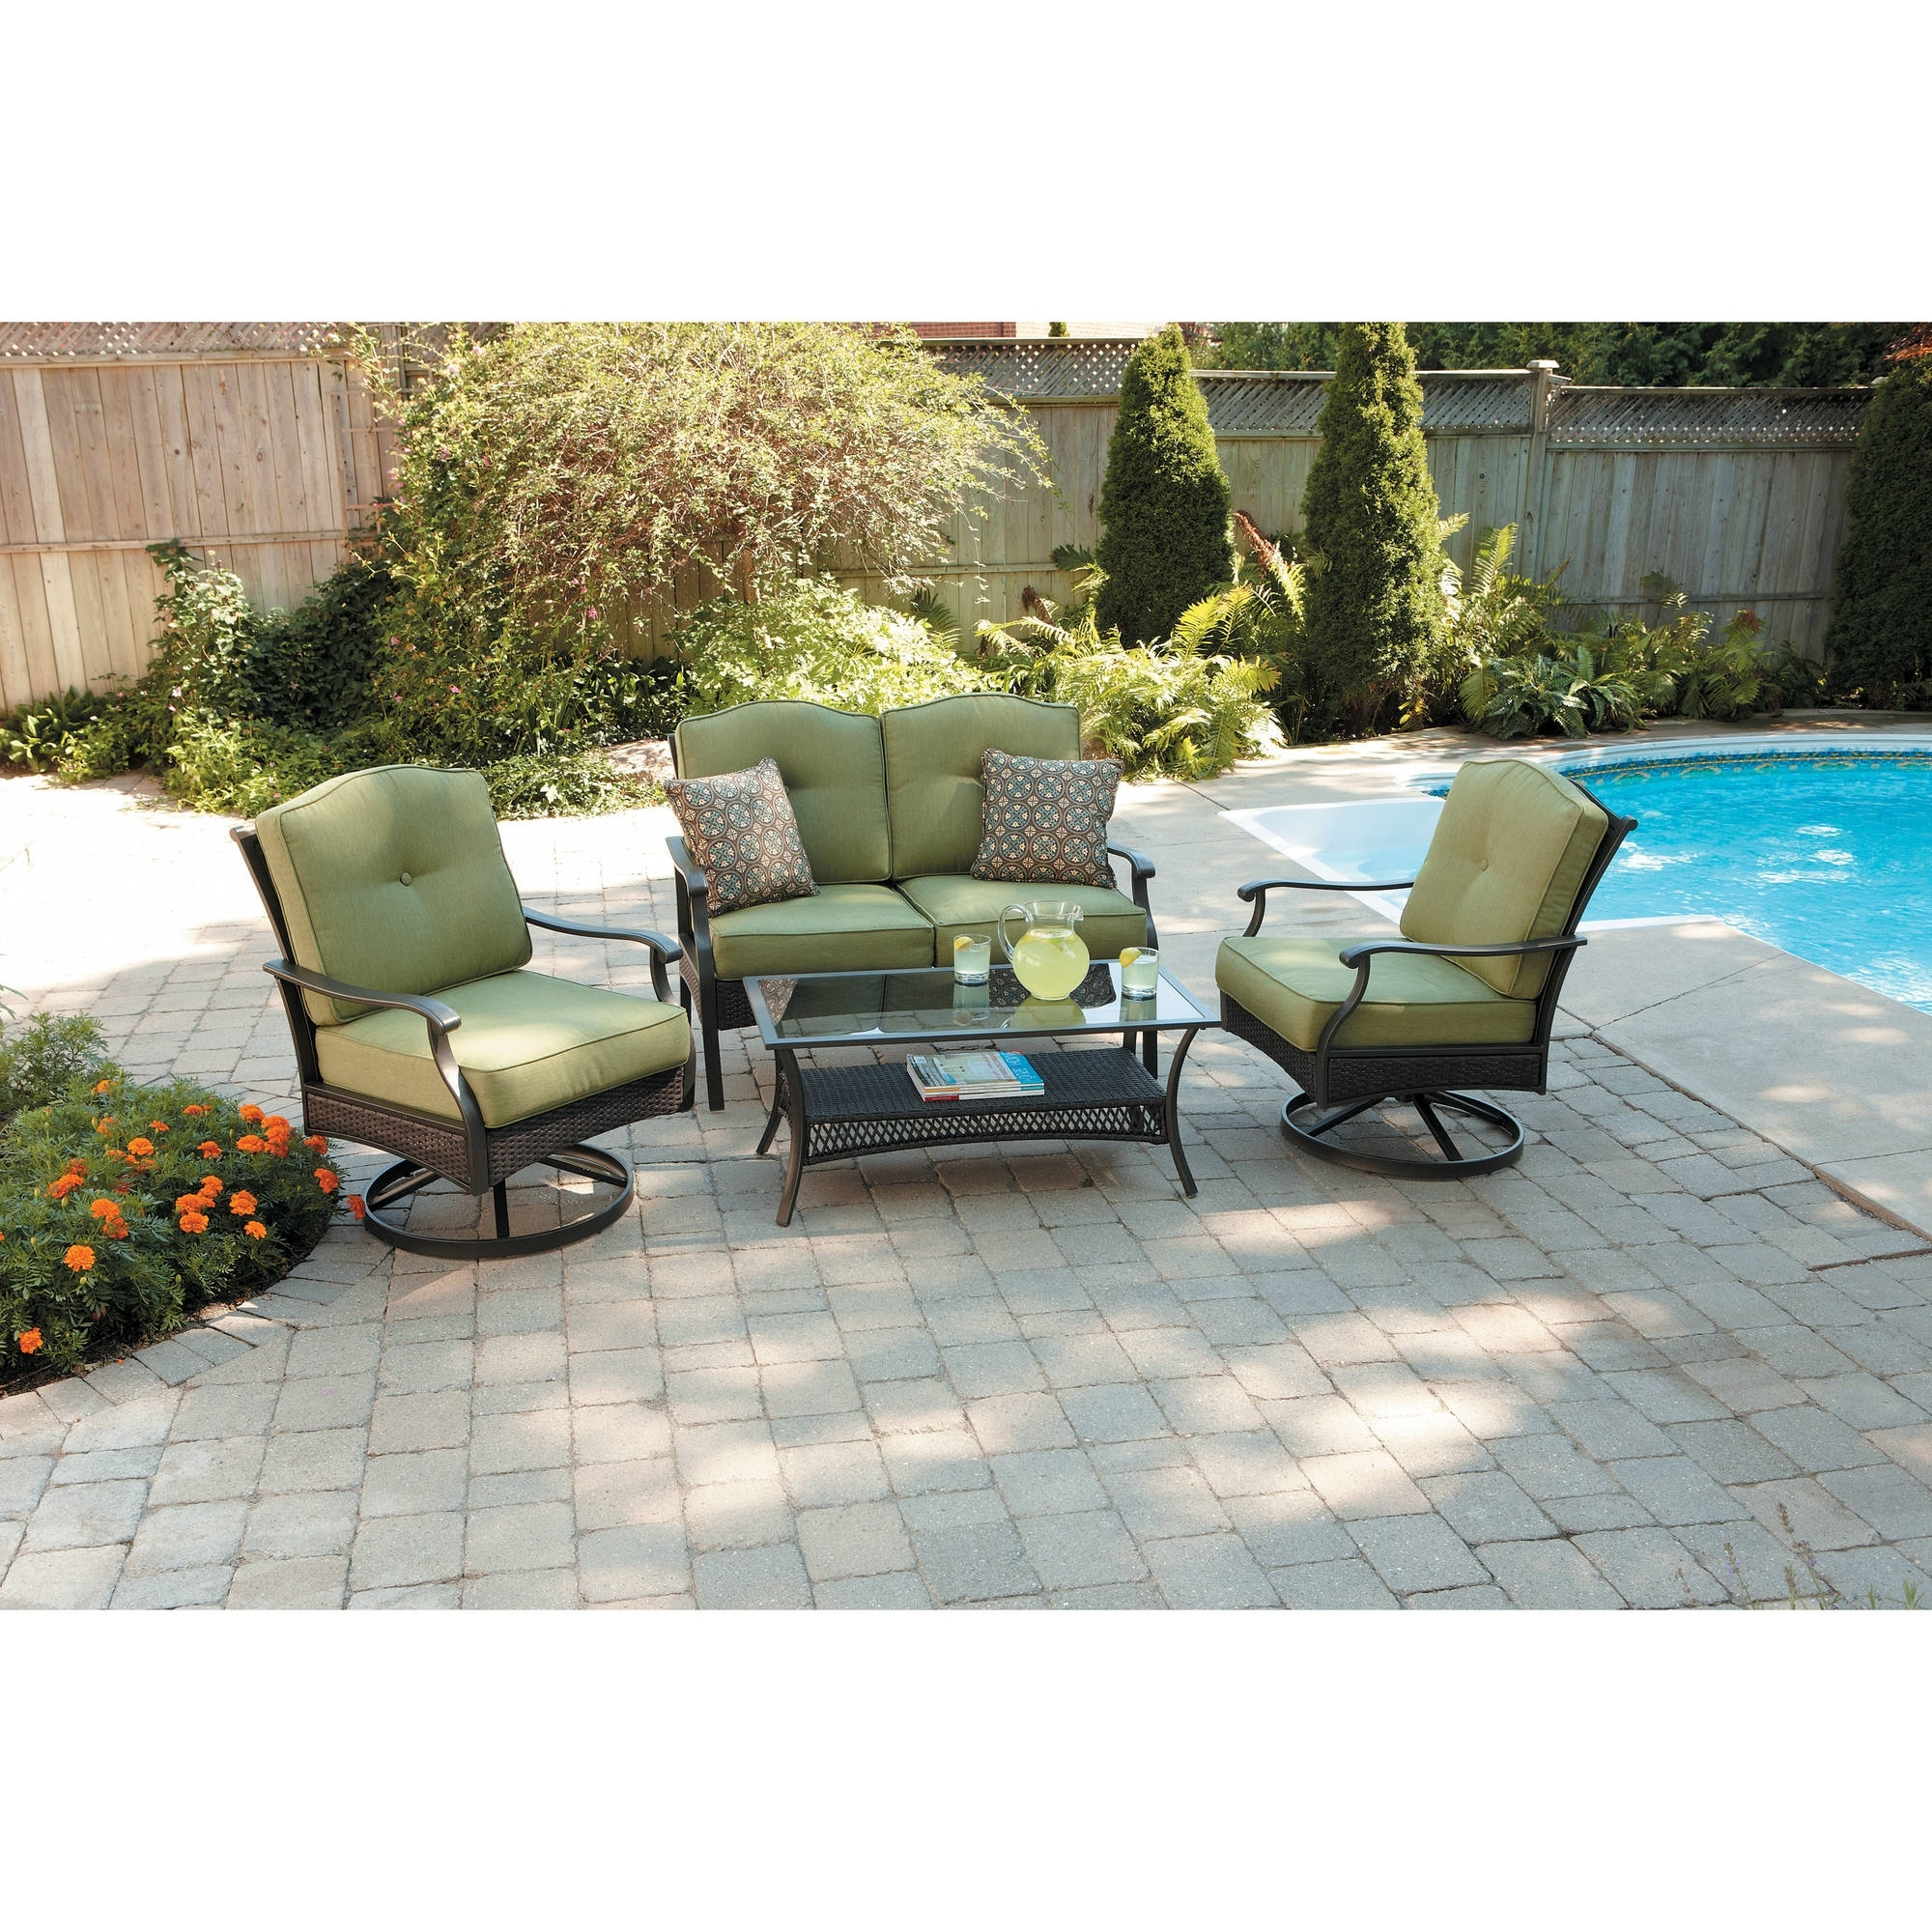 Patio Conversation Sets With Swivel Chairs Regarding Well Known Better Homes And Gardens Providence 4 Piece Patio Conversation Set (View 14 of 20)